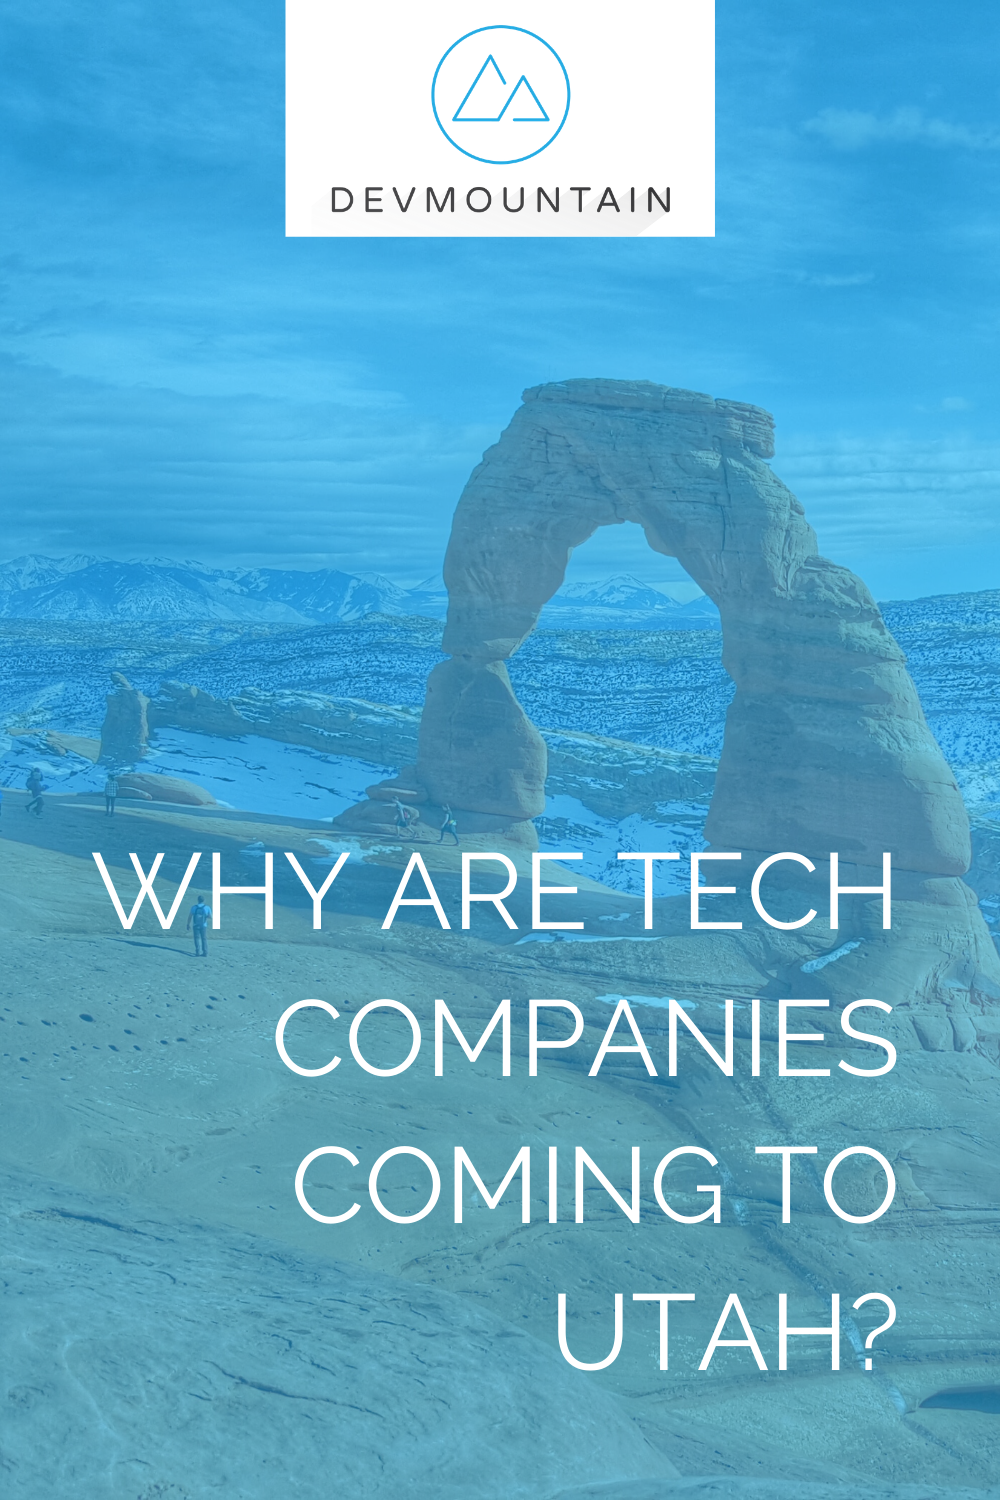 why are tech companies coming to utah?